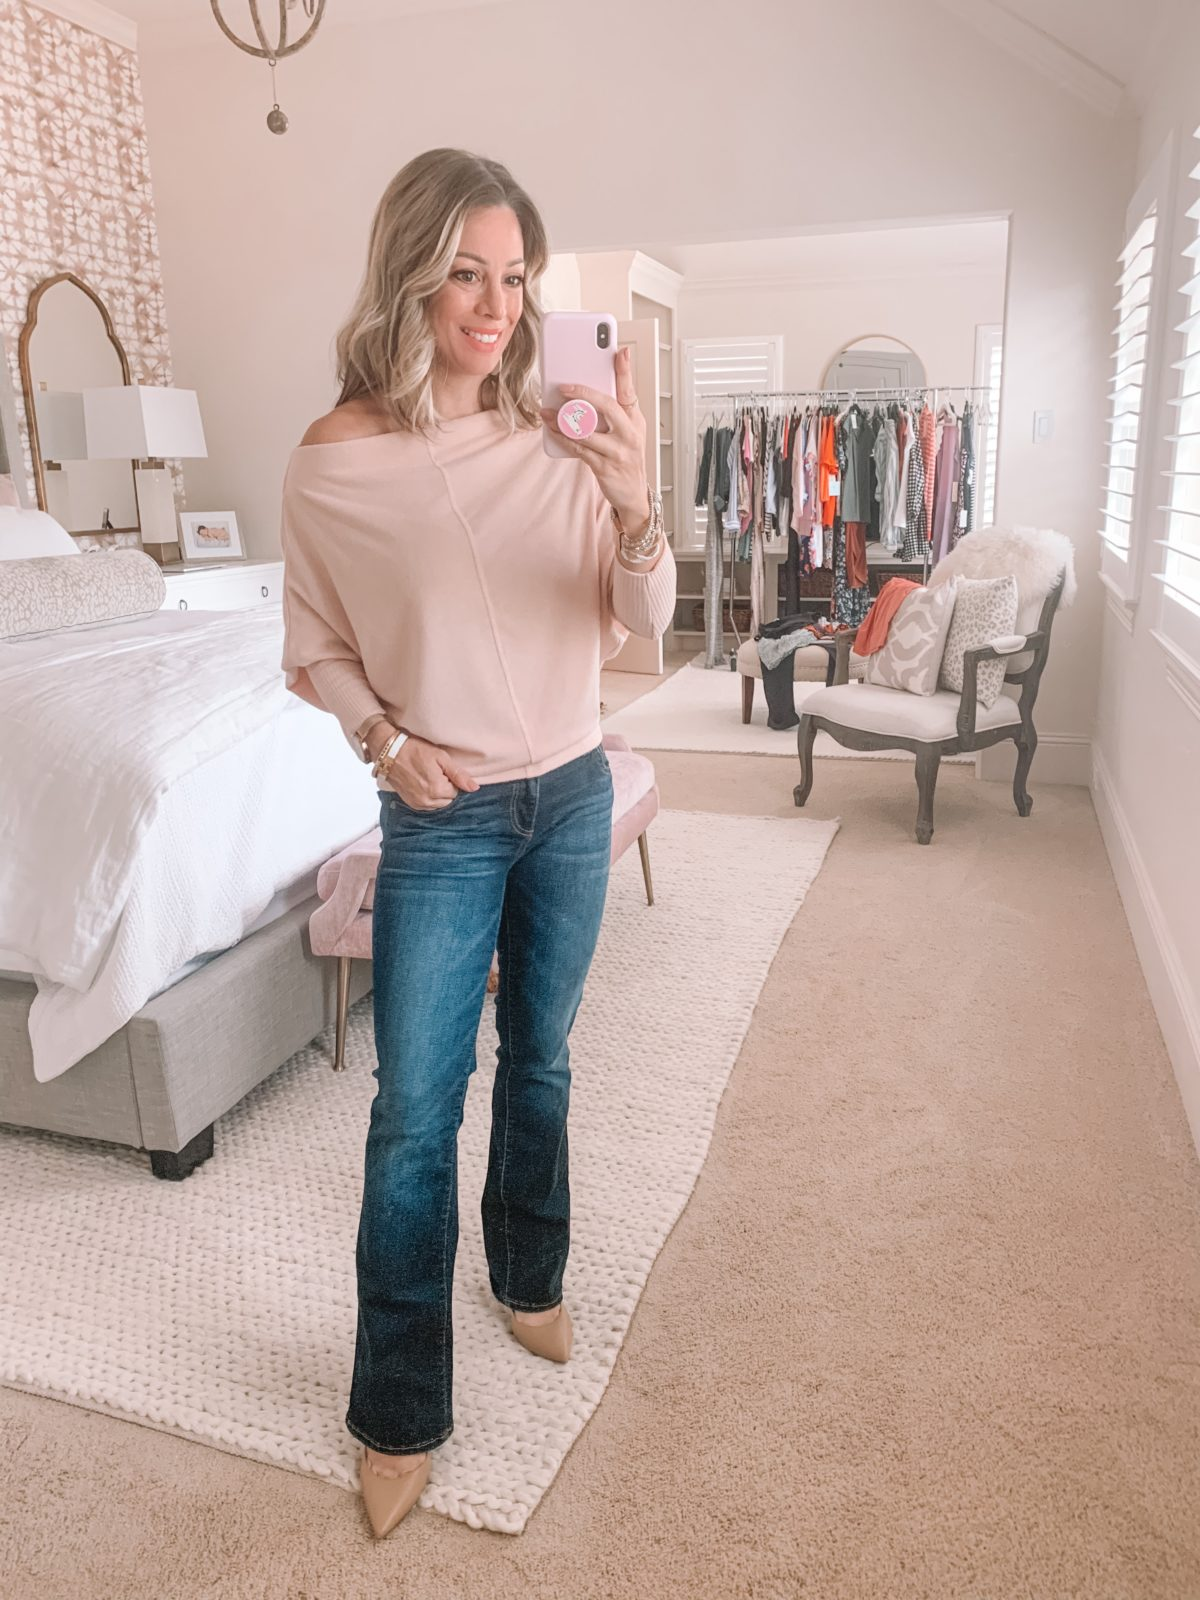 Dressing Room Finds Nordstrom and LOFT, Slouchy Long Sleeve Sweater, BootCut Jeans, Heels